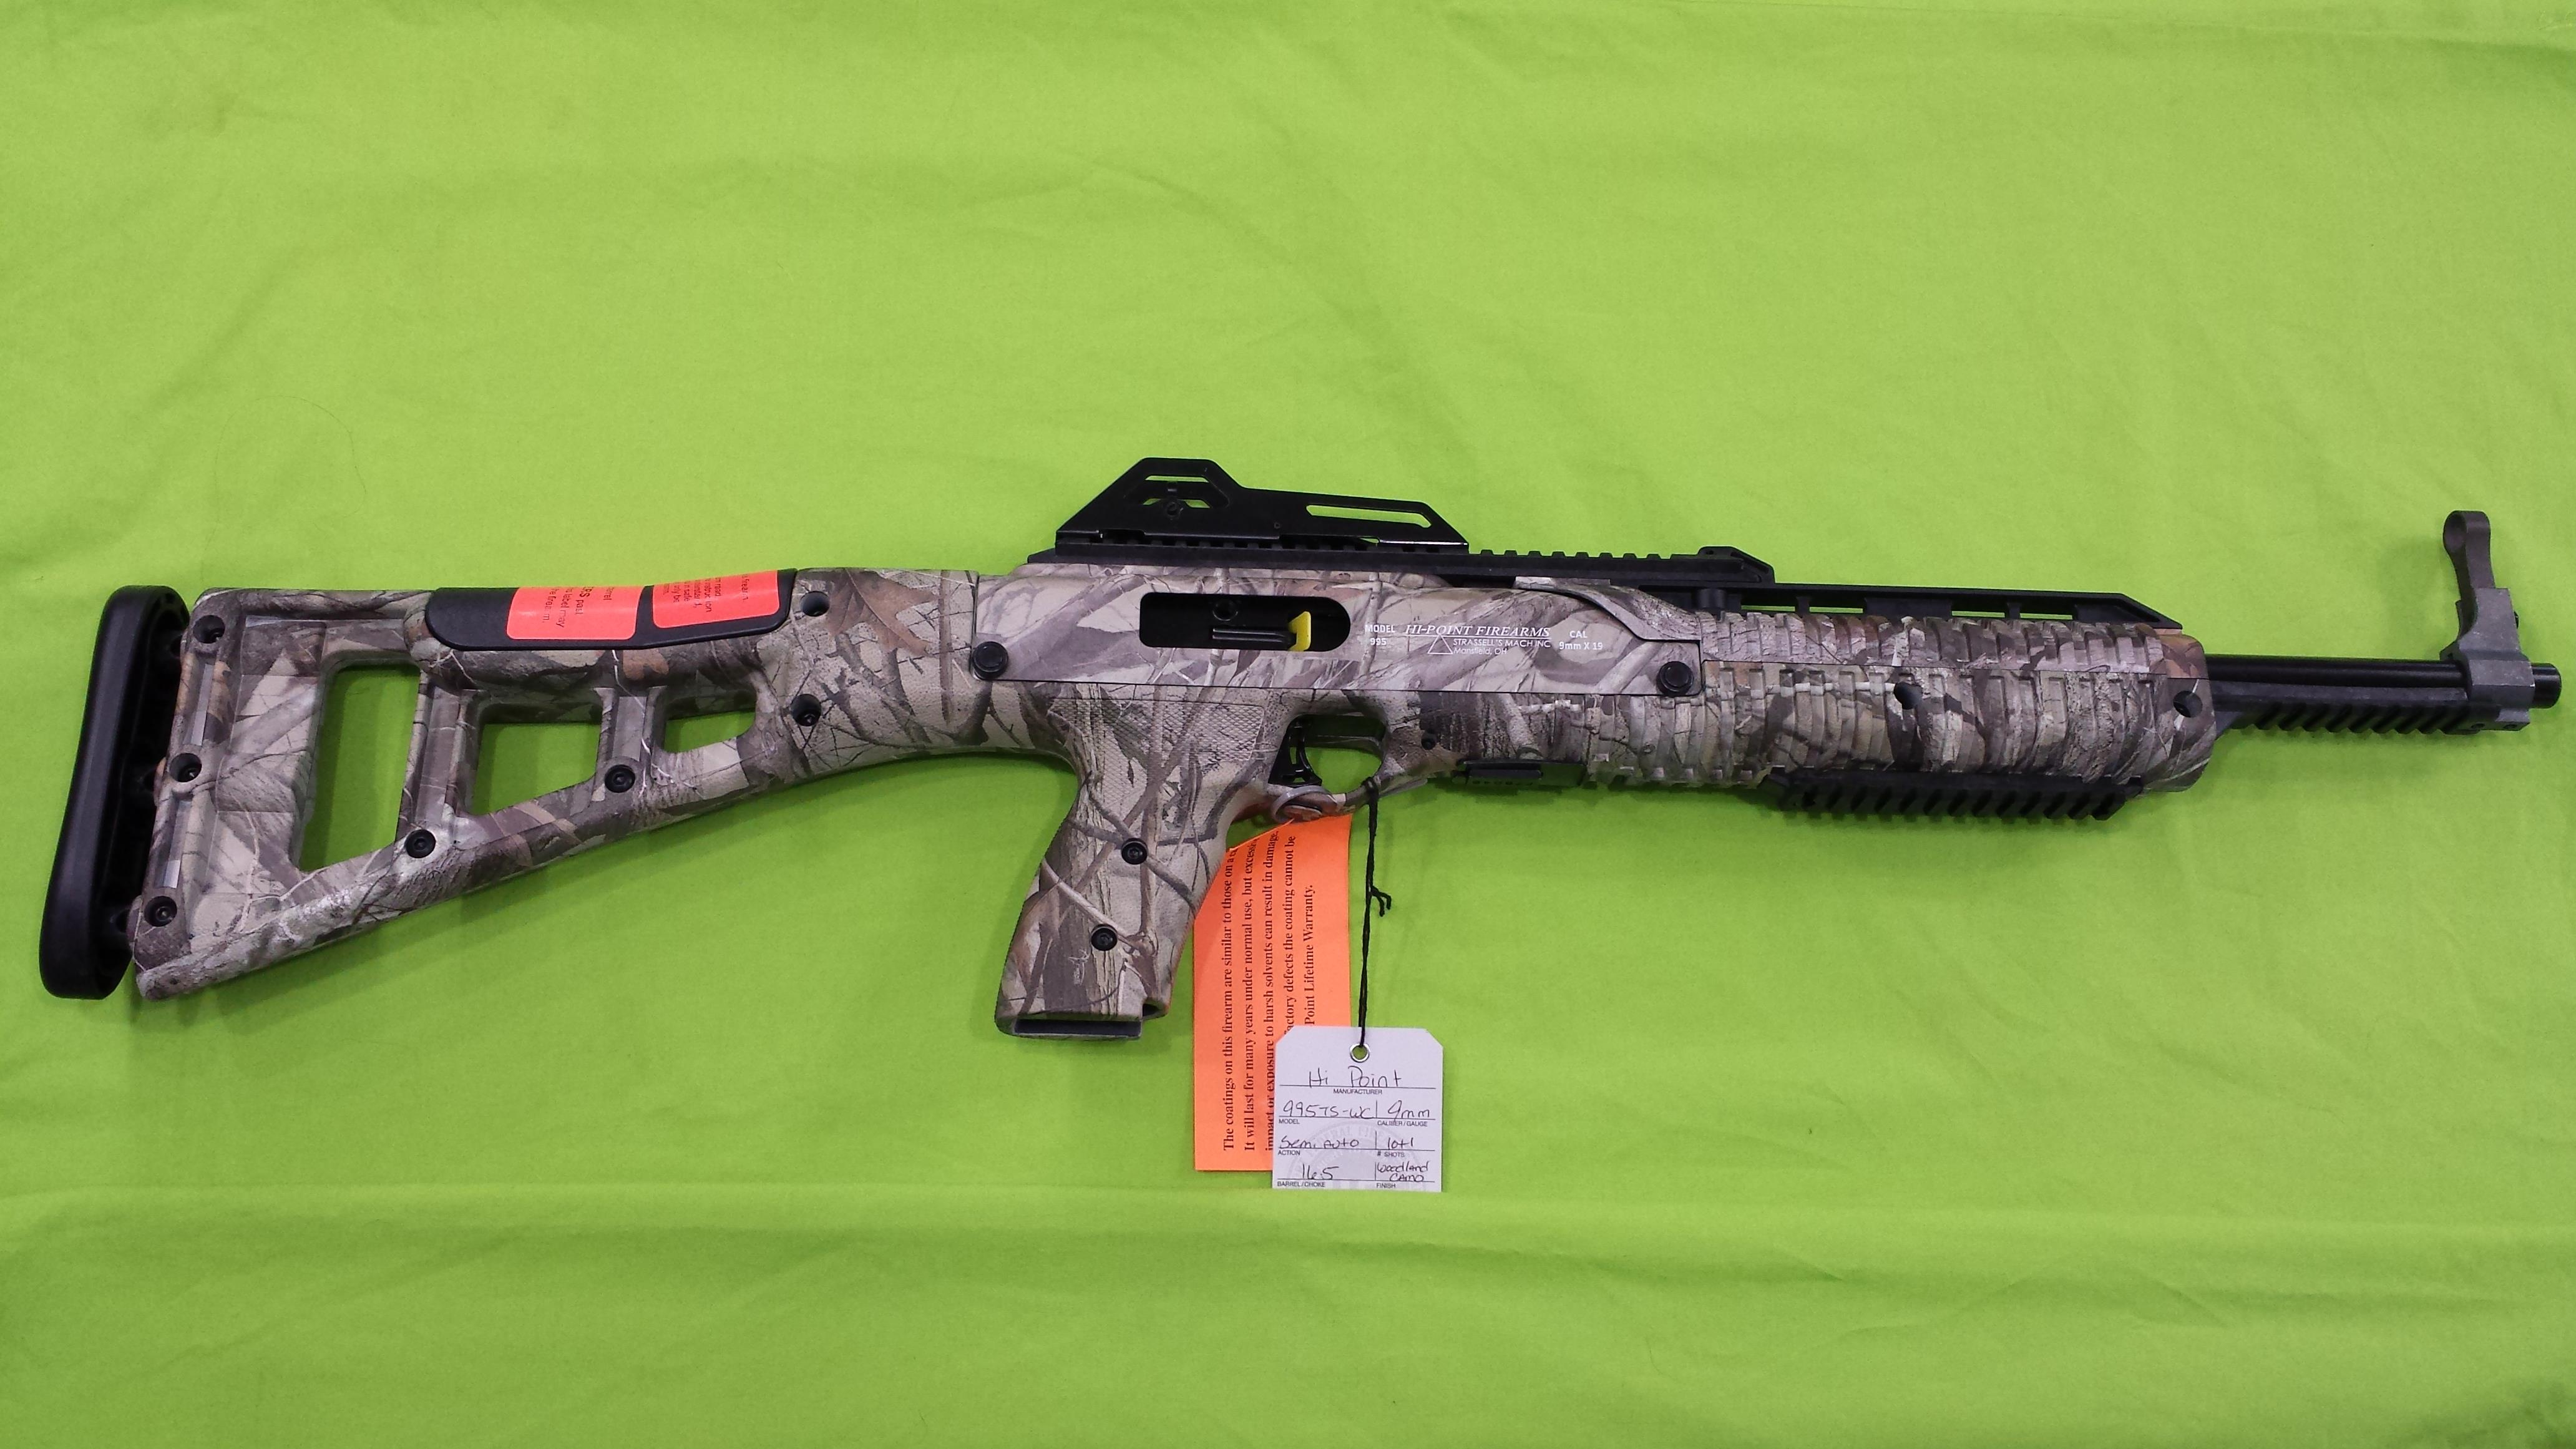 HI POINT 995TS WC 995 9 MM 9MM CARBINE WOODLAND CAMO RIFLE